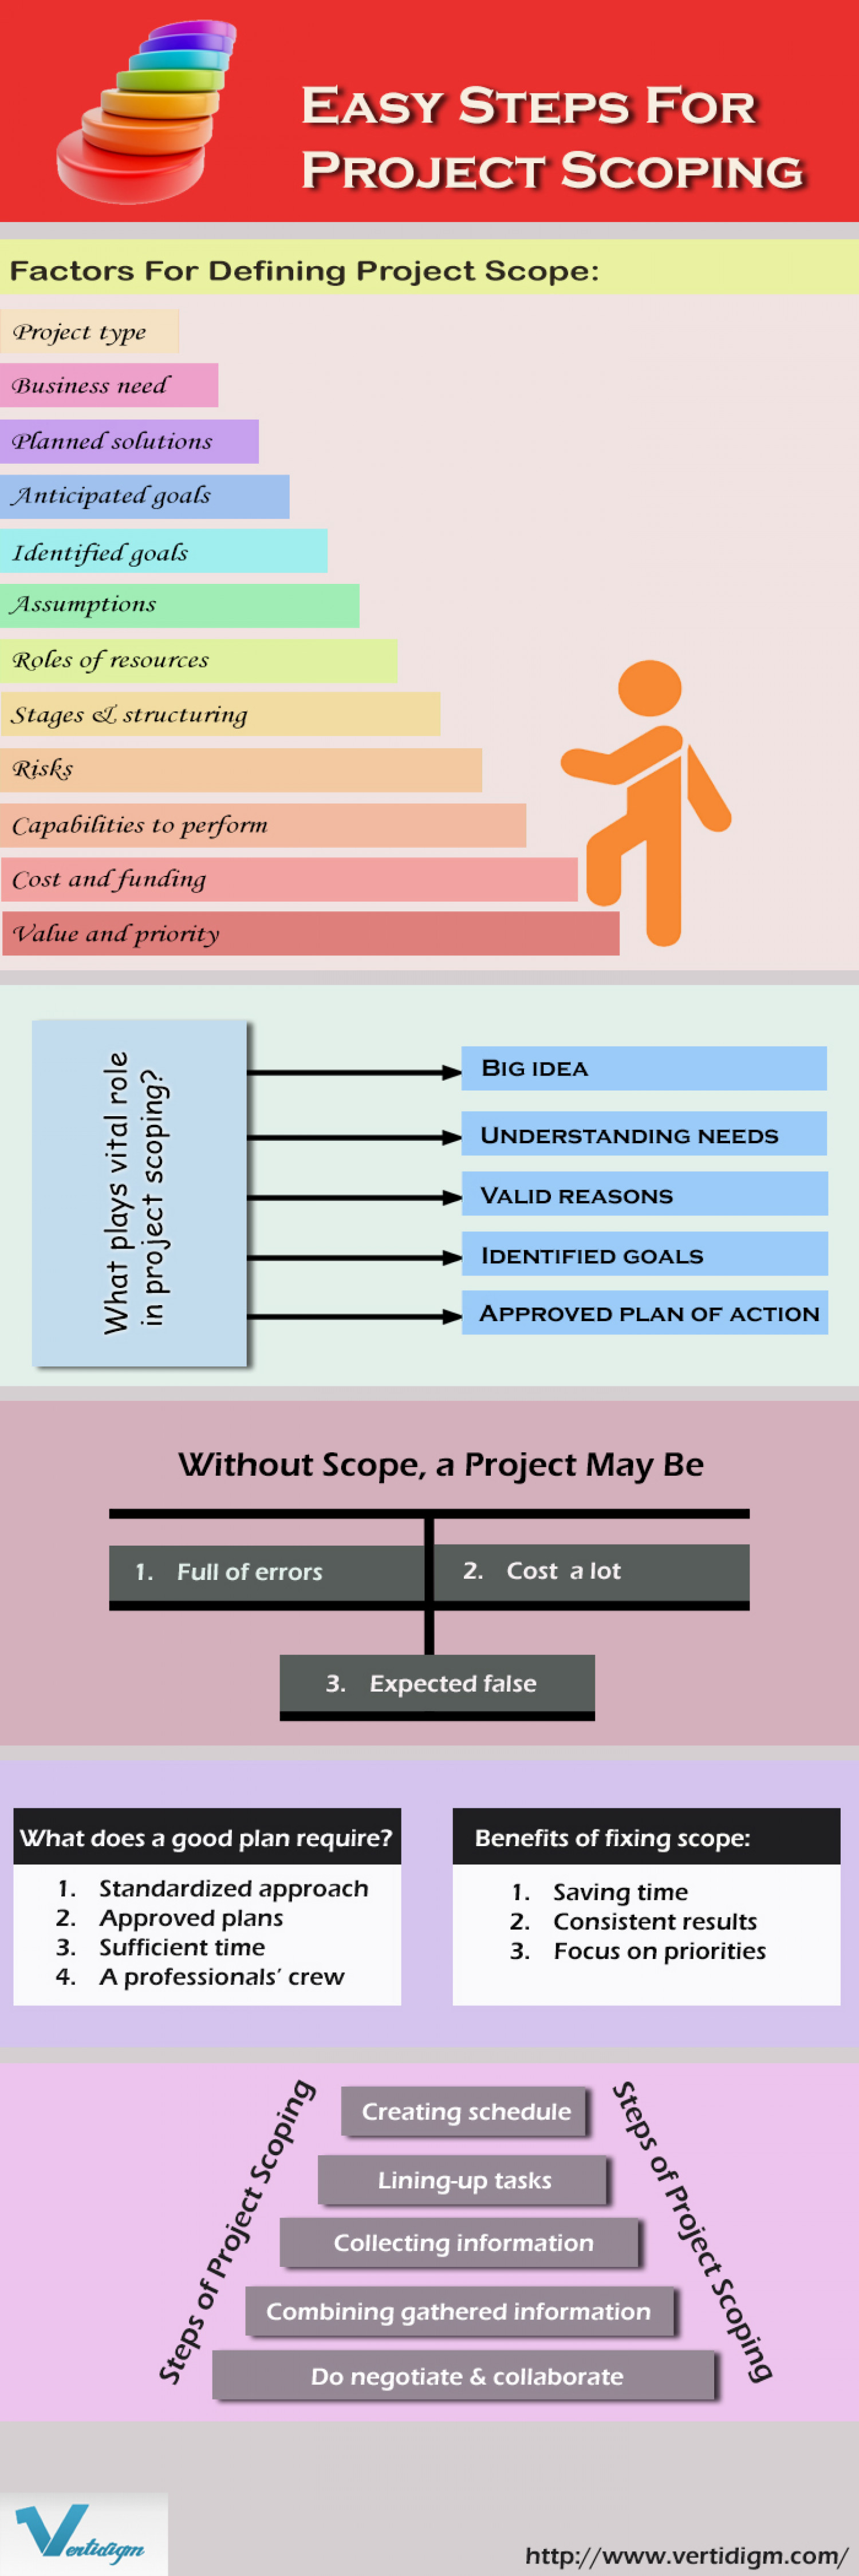 Easy Steps for Project Scoping Infographic